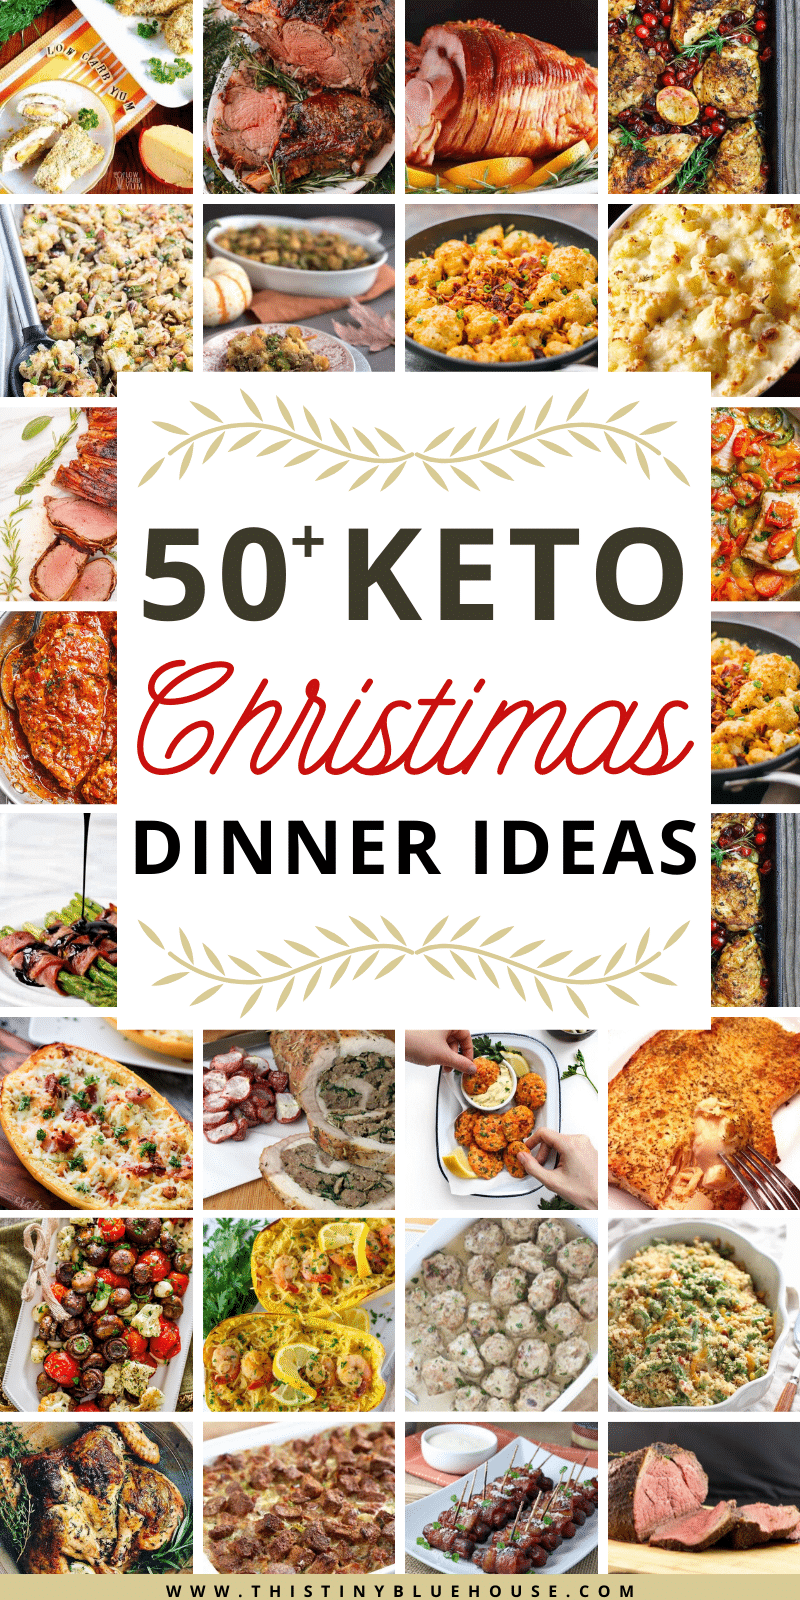 here are 50+ delicious Christmas dinner ideas that will make sticking to Keto during the holiday a breeze. Easy, delicious and Keto friendly these recipes are a guaranteed hit! #ketodinnerideas #ketochristmasdinner #ketoholidaydinner #ketothanksgivingdinner #ketochristmasdinnerideas #ketochristmasmenu #ketochristmasmenuideas #lowcarbdinnerideas #lowcarbchristmasdinnerideas